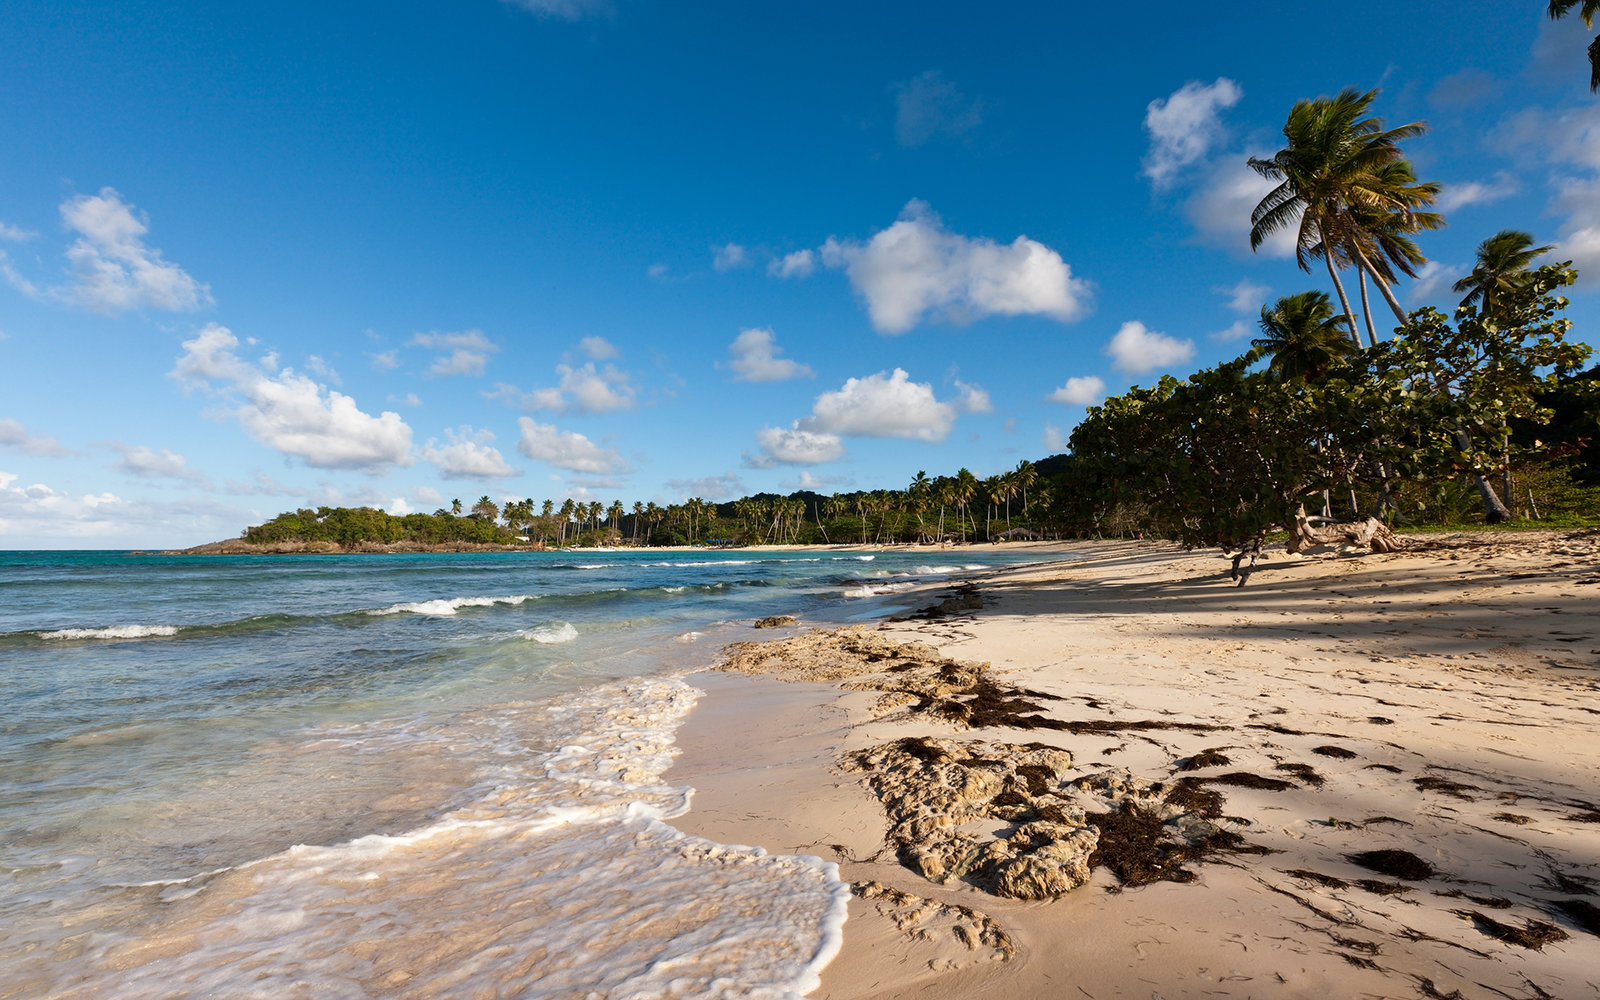 (GERMANY OUT) Playa Rincon Beach near Las Galeras, Samana Peninsula, Dominican Republic  (Photo by Reinhard Dirscherl/ullstein bild via Getty Images)